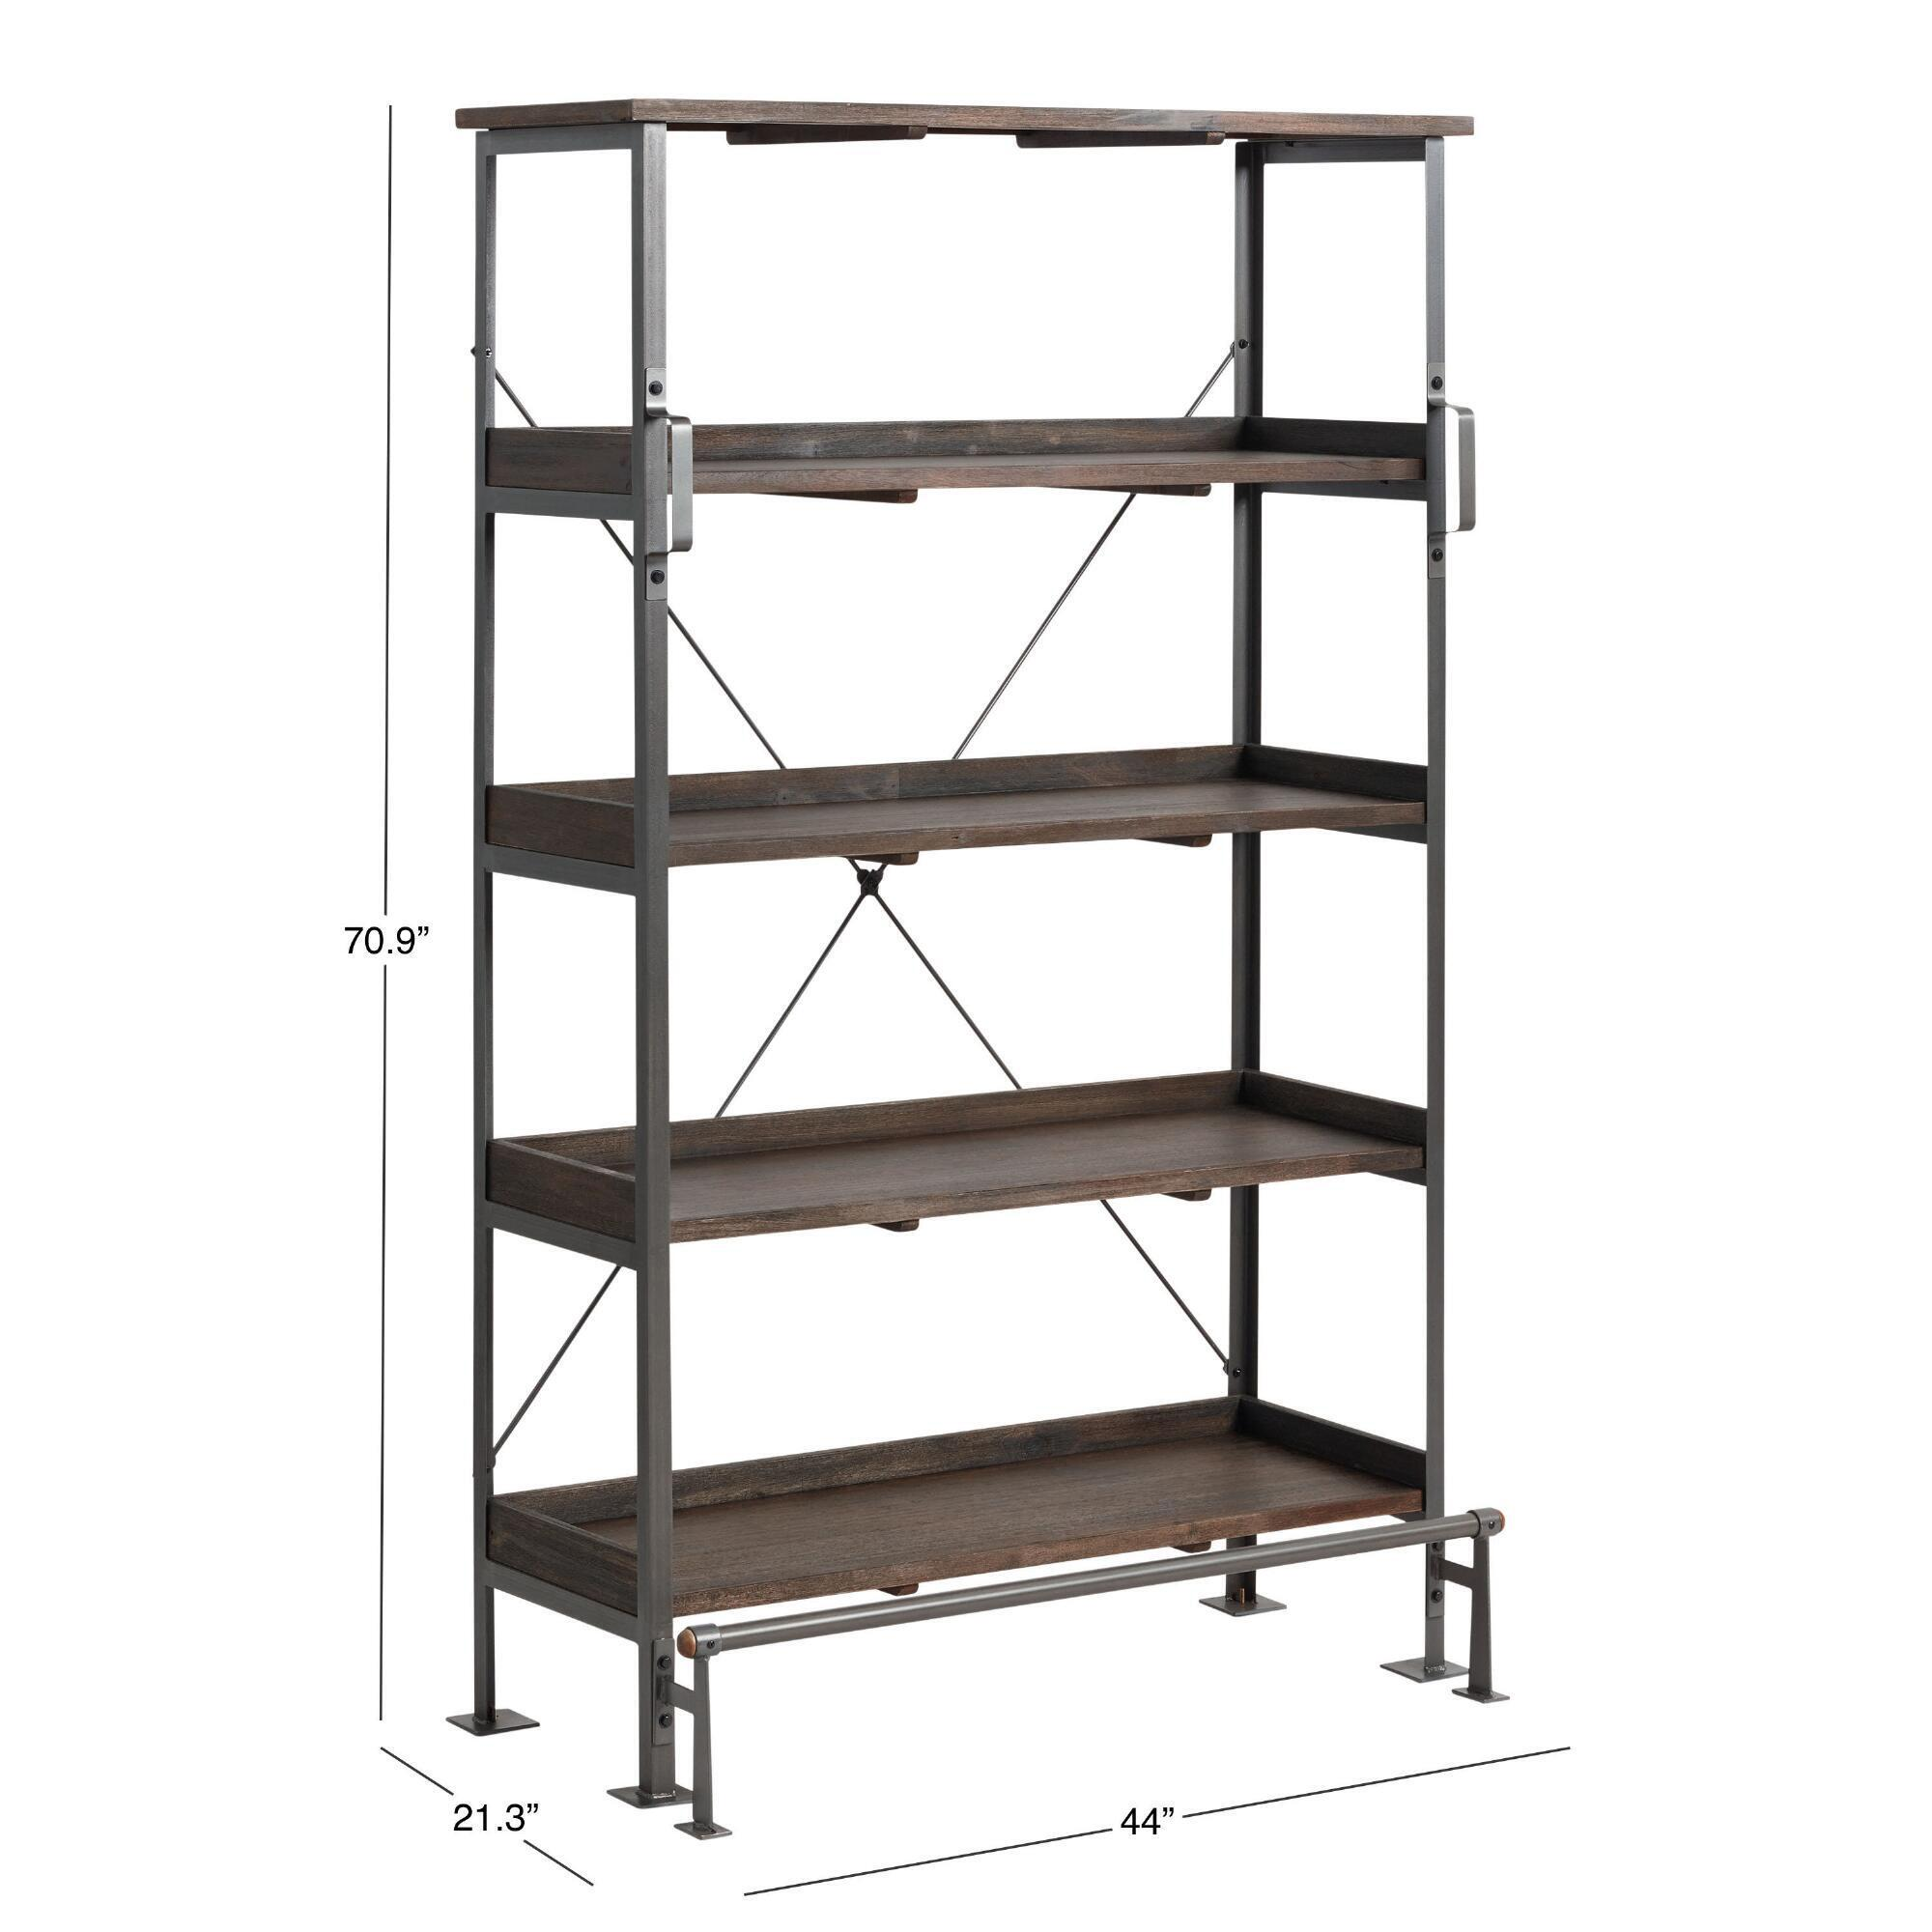 door bookcase ikea seville deal for food chrome valemont uncategorized furnishings favorable factory wooden very of at glass shelf impressive beguile shelving storage full shelves bookcas cube organizer bayside closet bookcases unit costco size amazing with fabulous home tall portraiture